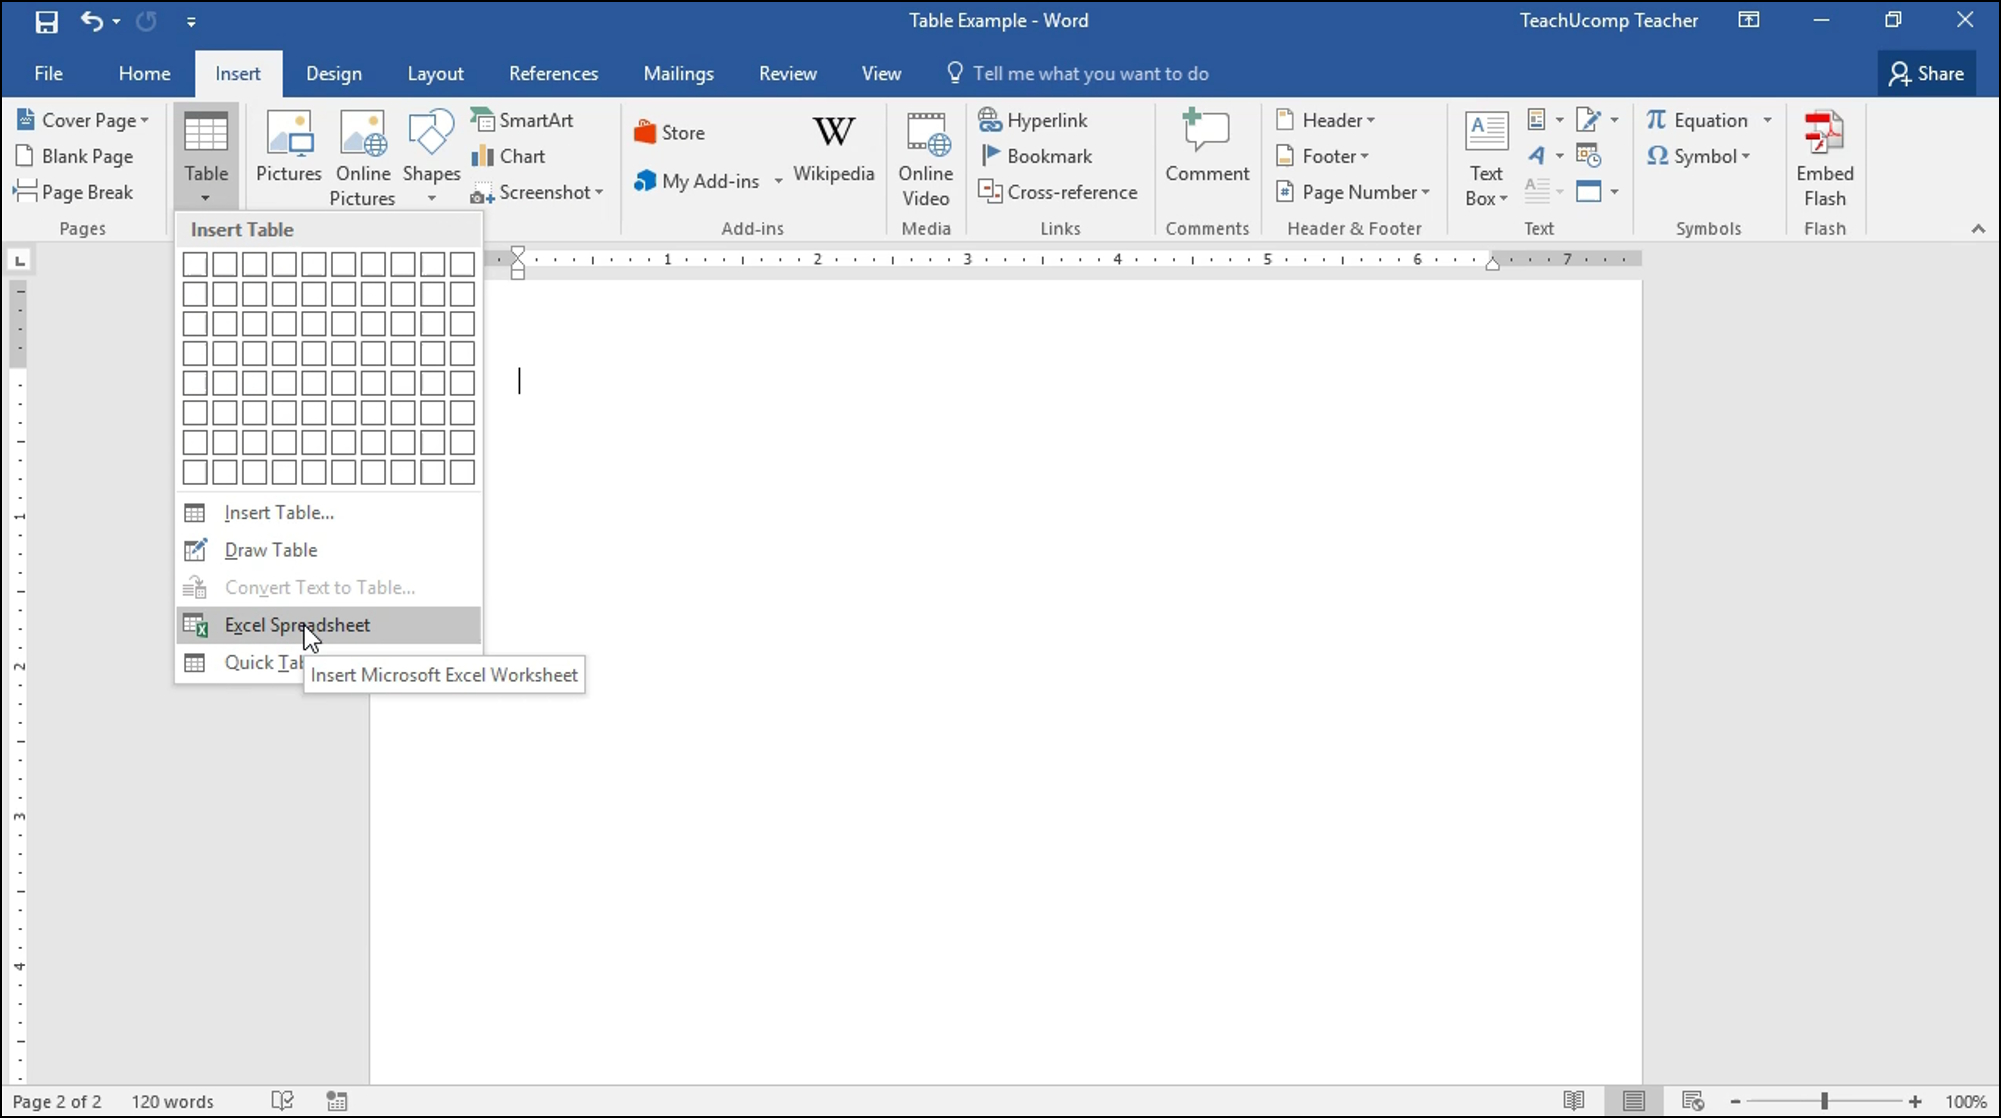 Excel Spreadsheet In Word For Insert An Excel Worksheet Into A Word Document  Tutorial